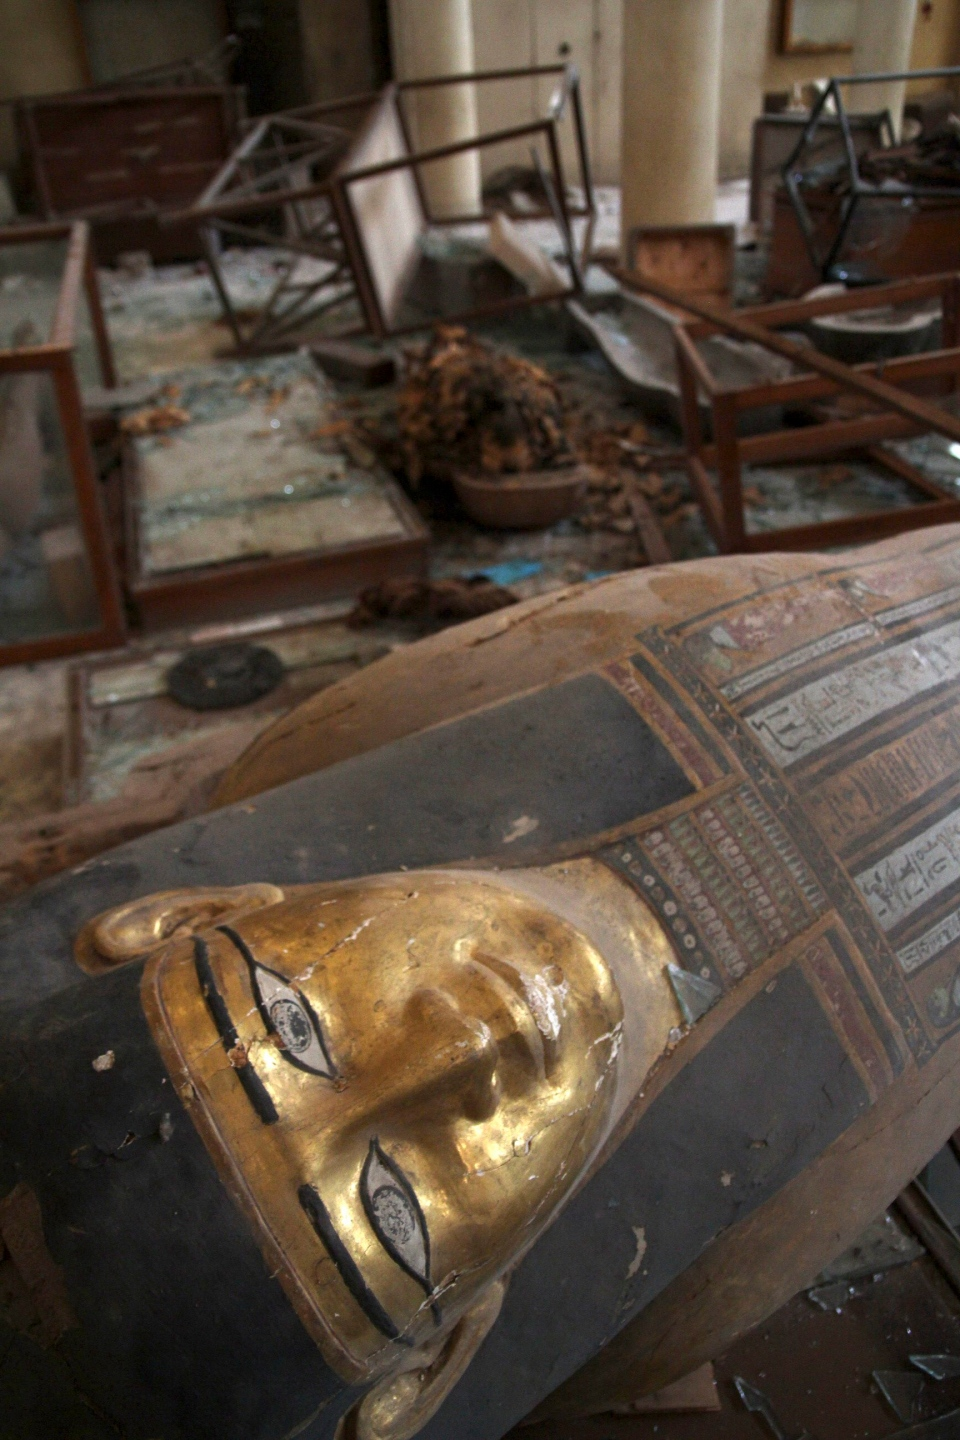 Damaged pharaonic objects lie on the floor of the Malawi Antiquities Museum after it was ransacked and looted in Malawi, south of Minya, Egypt, Saturday, Aug. 17, 2013. (Roger Anis / El Shorouk Newspaper)